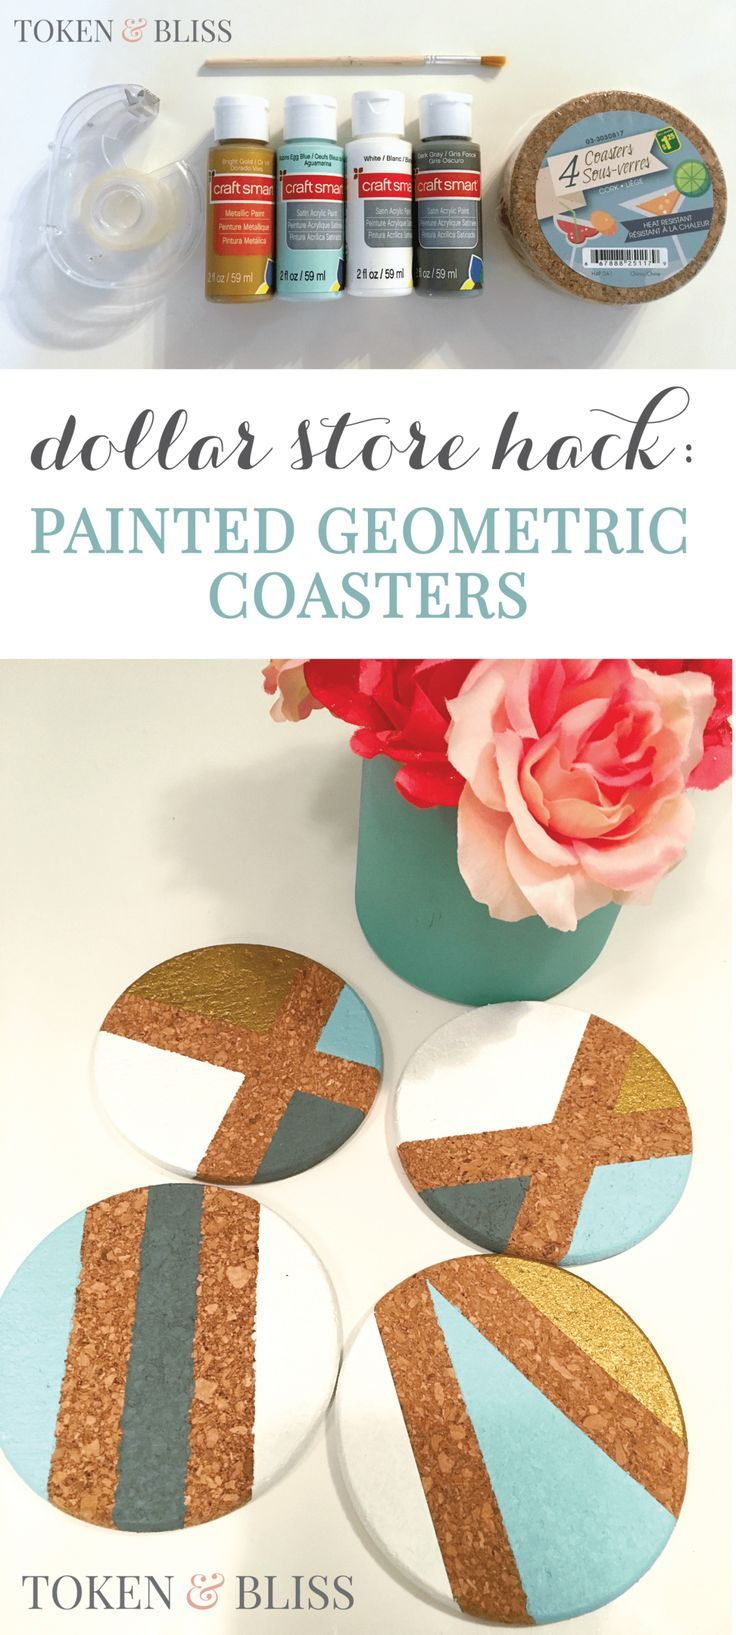 Dollar Store Hack Diy Painted Geometric Cork Coasters Pinterest